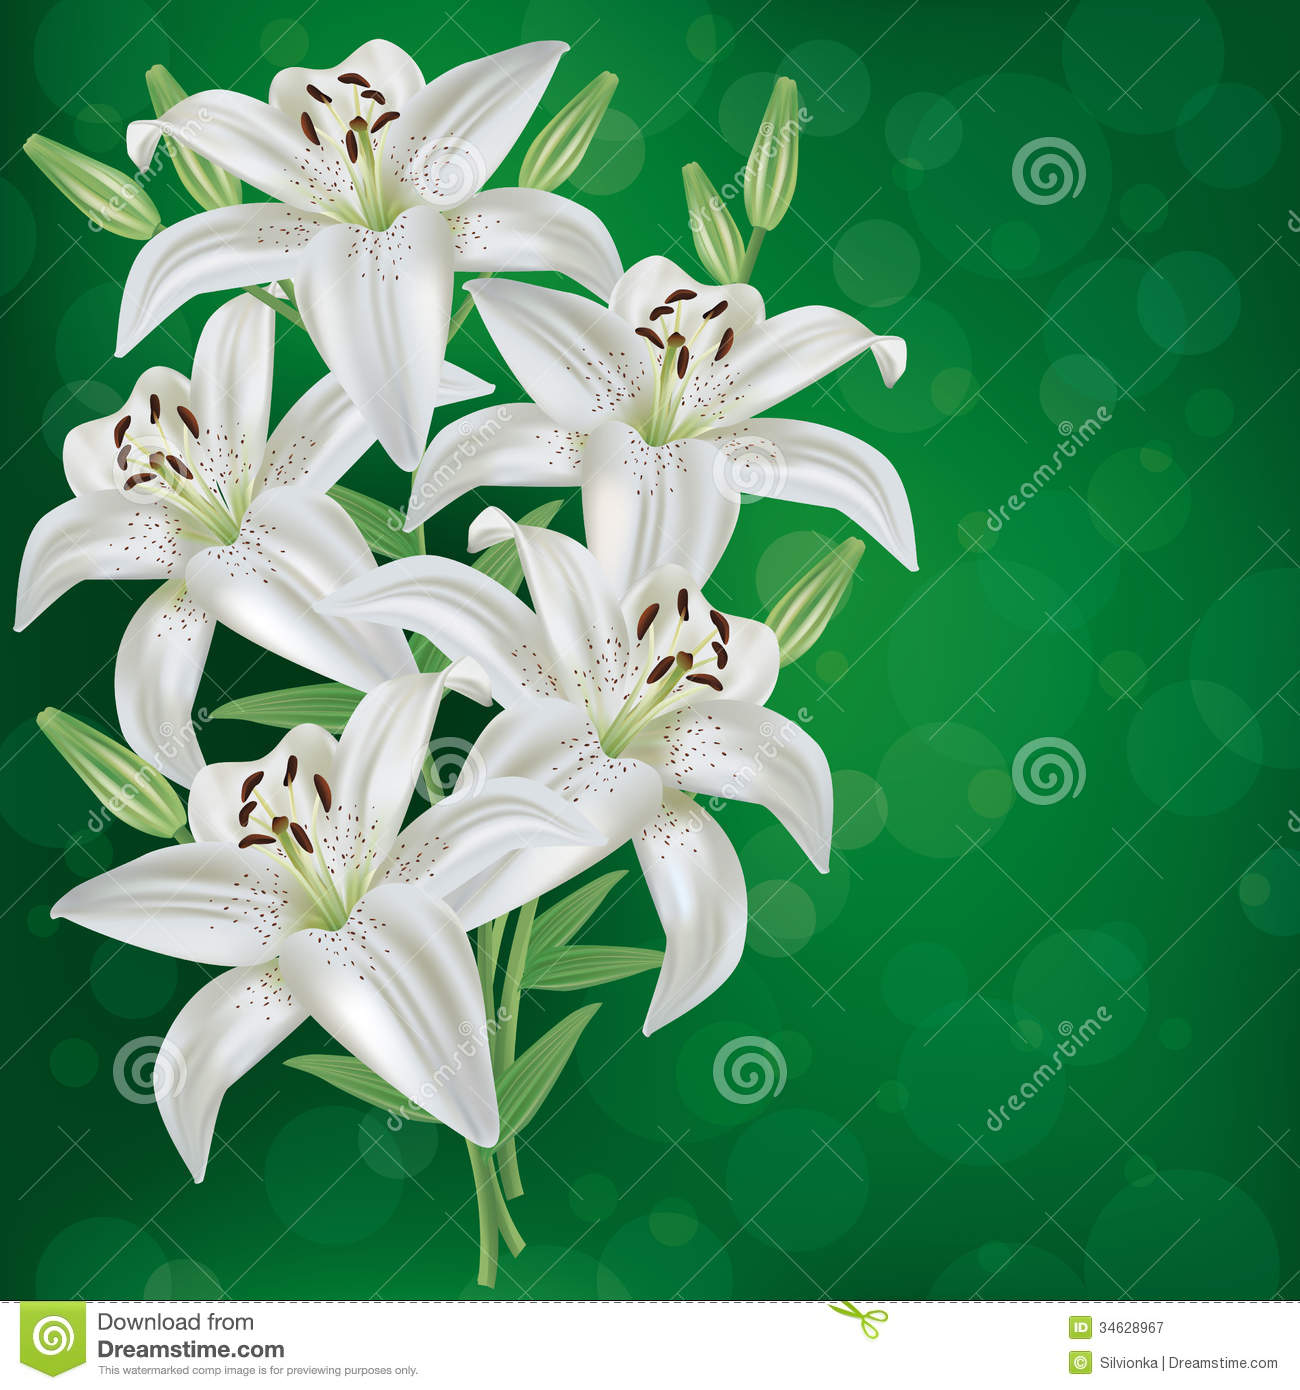 green lily love - photo #6